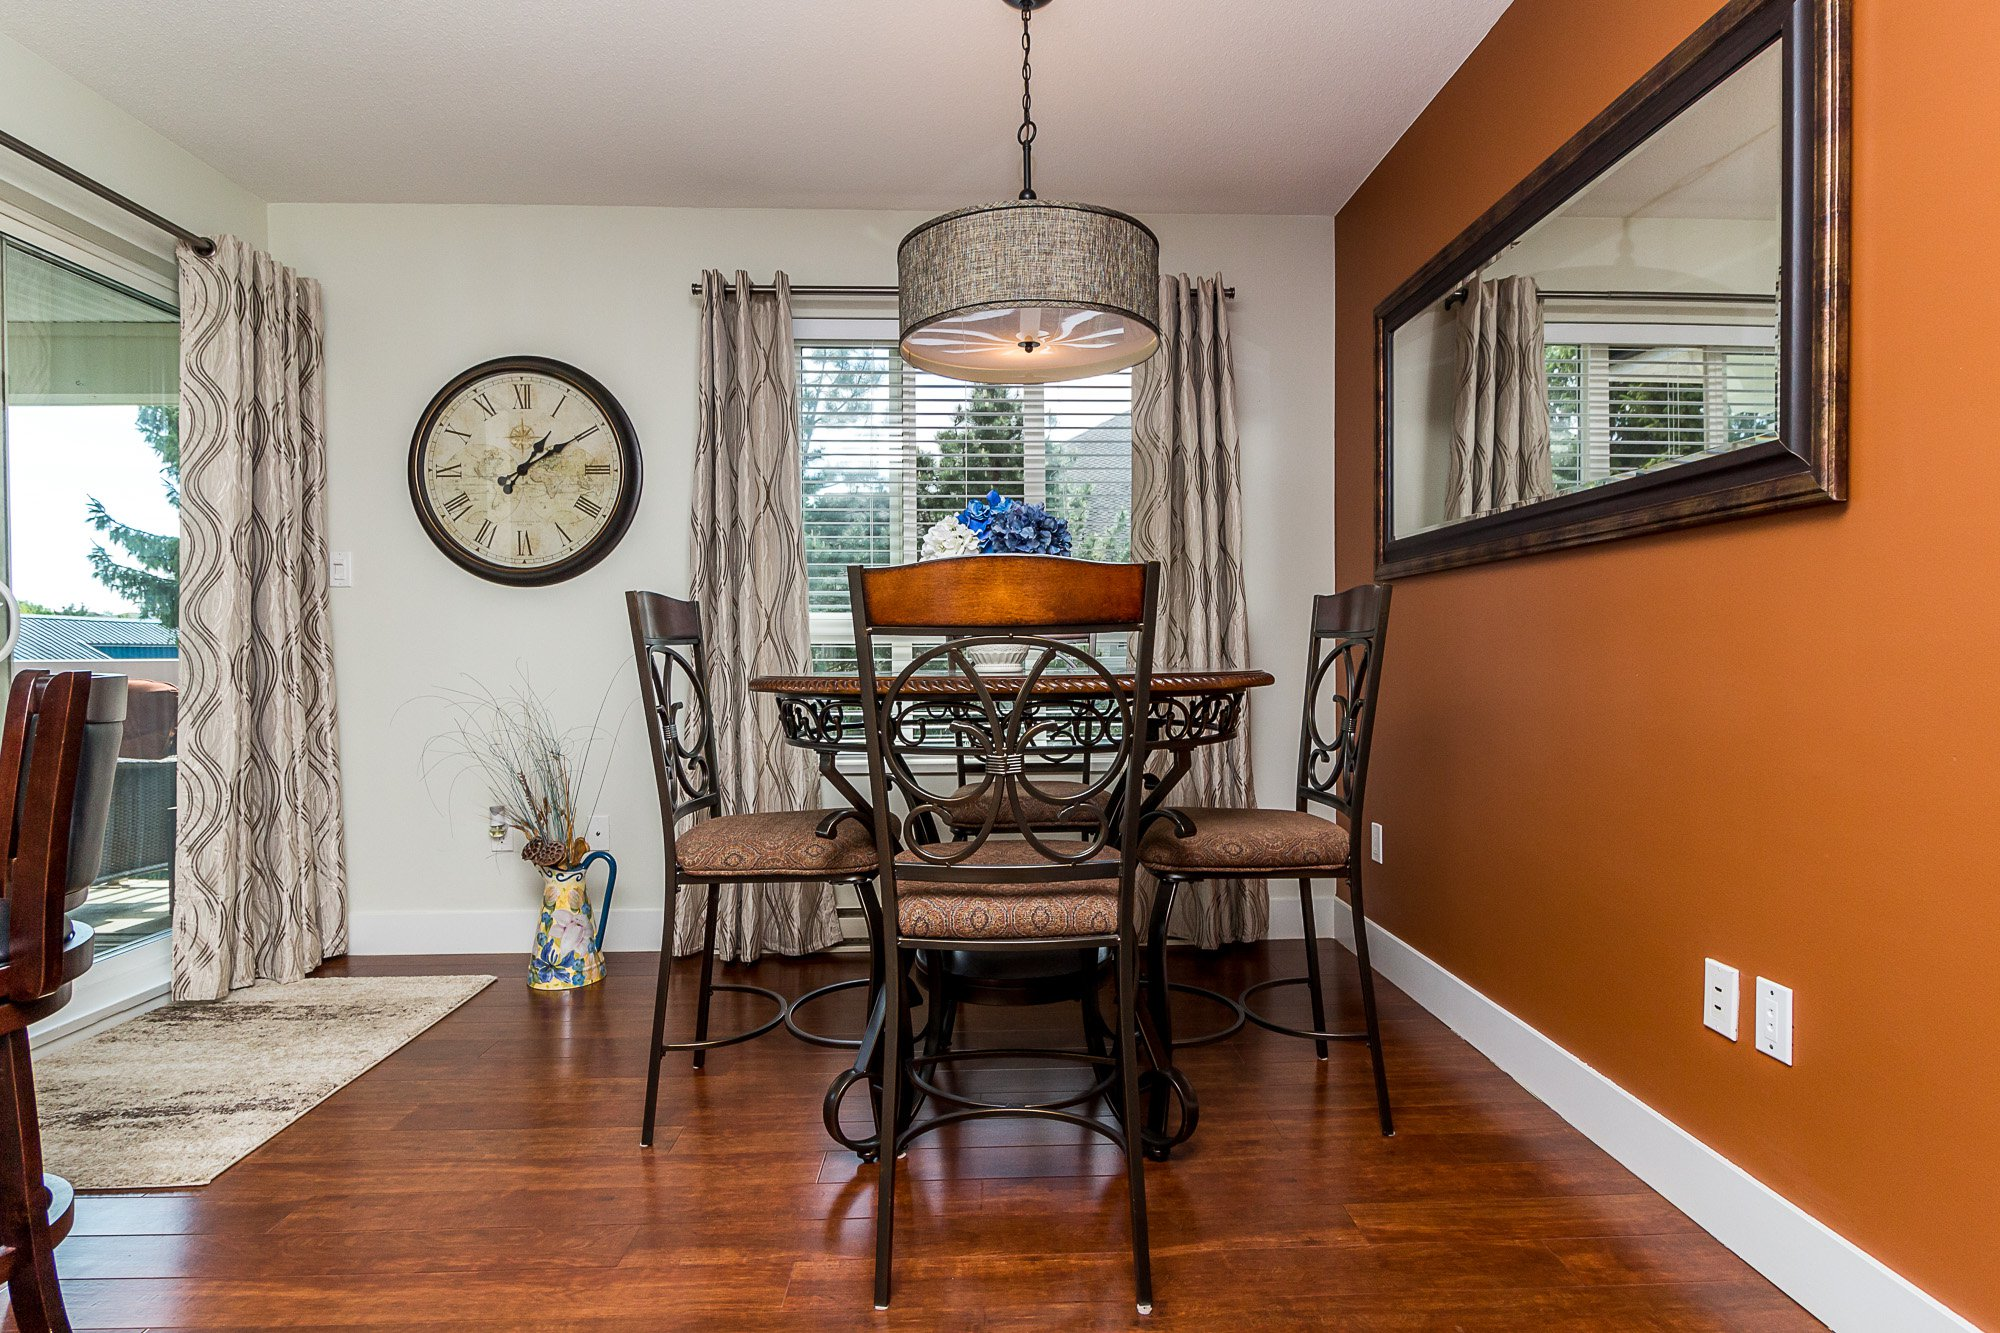 """Photo 9: Photos: 412 22022 49 Avenue in Langley: Murrayville Condo for sale in """"Murray Green"""" : MLS®# R2266359"""